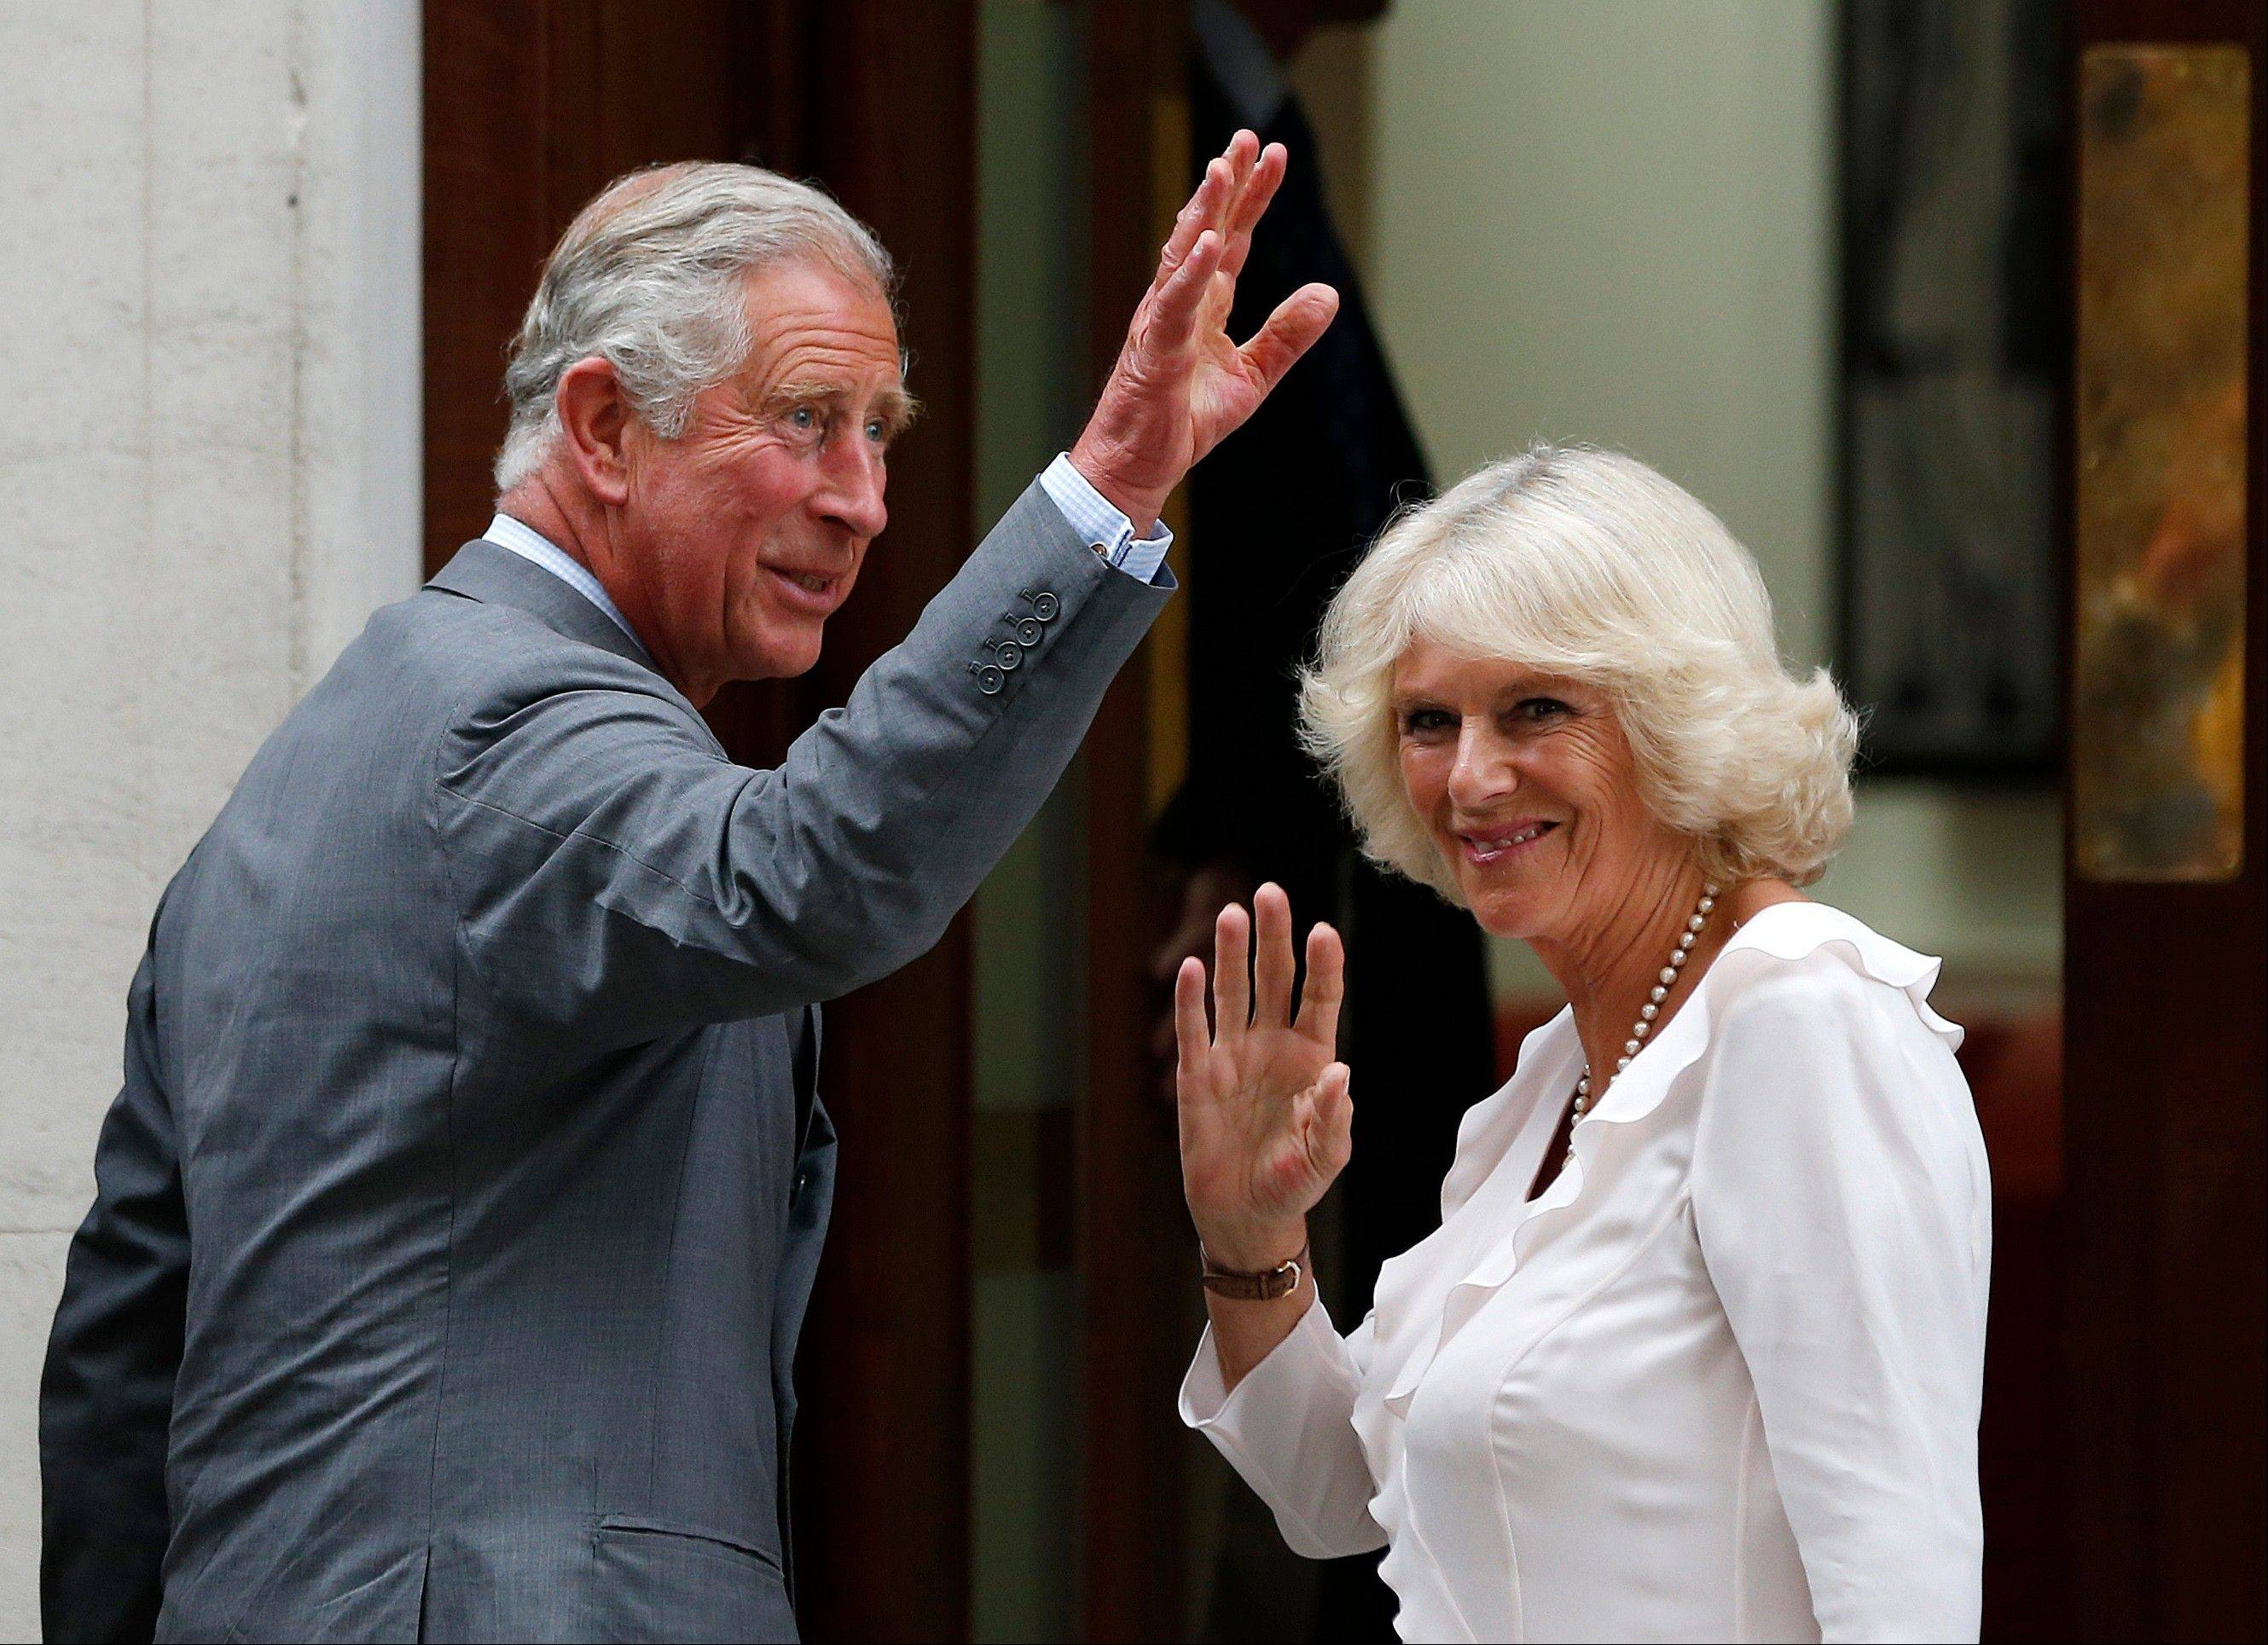 Britain's Prince Charles and his wife Camilla, Duchess of Cornwall arrive at St. Mary's Hospital exclusive Lindo Wing.